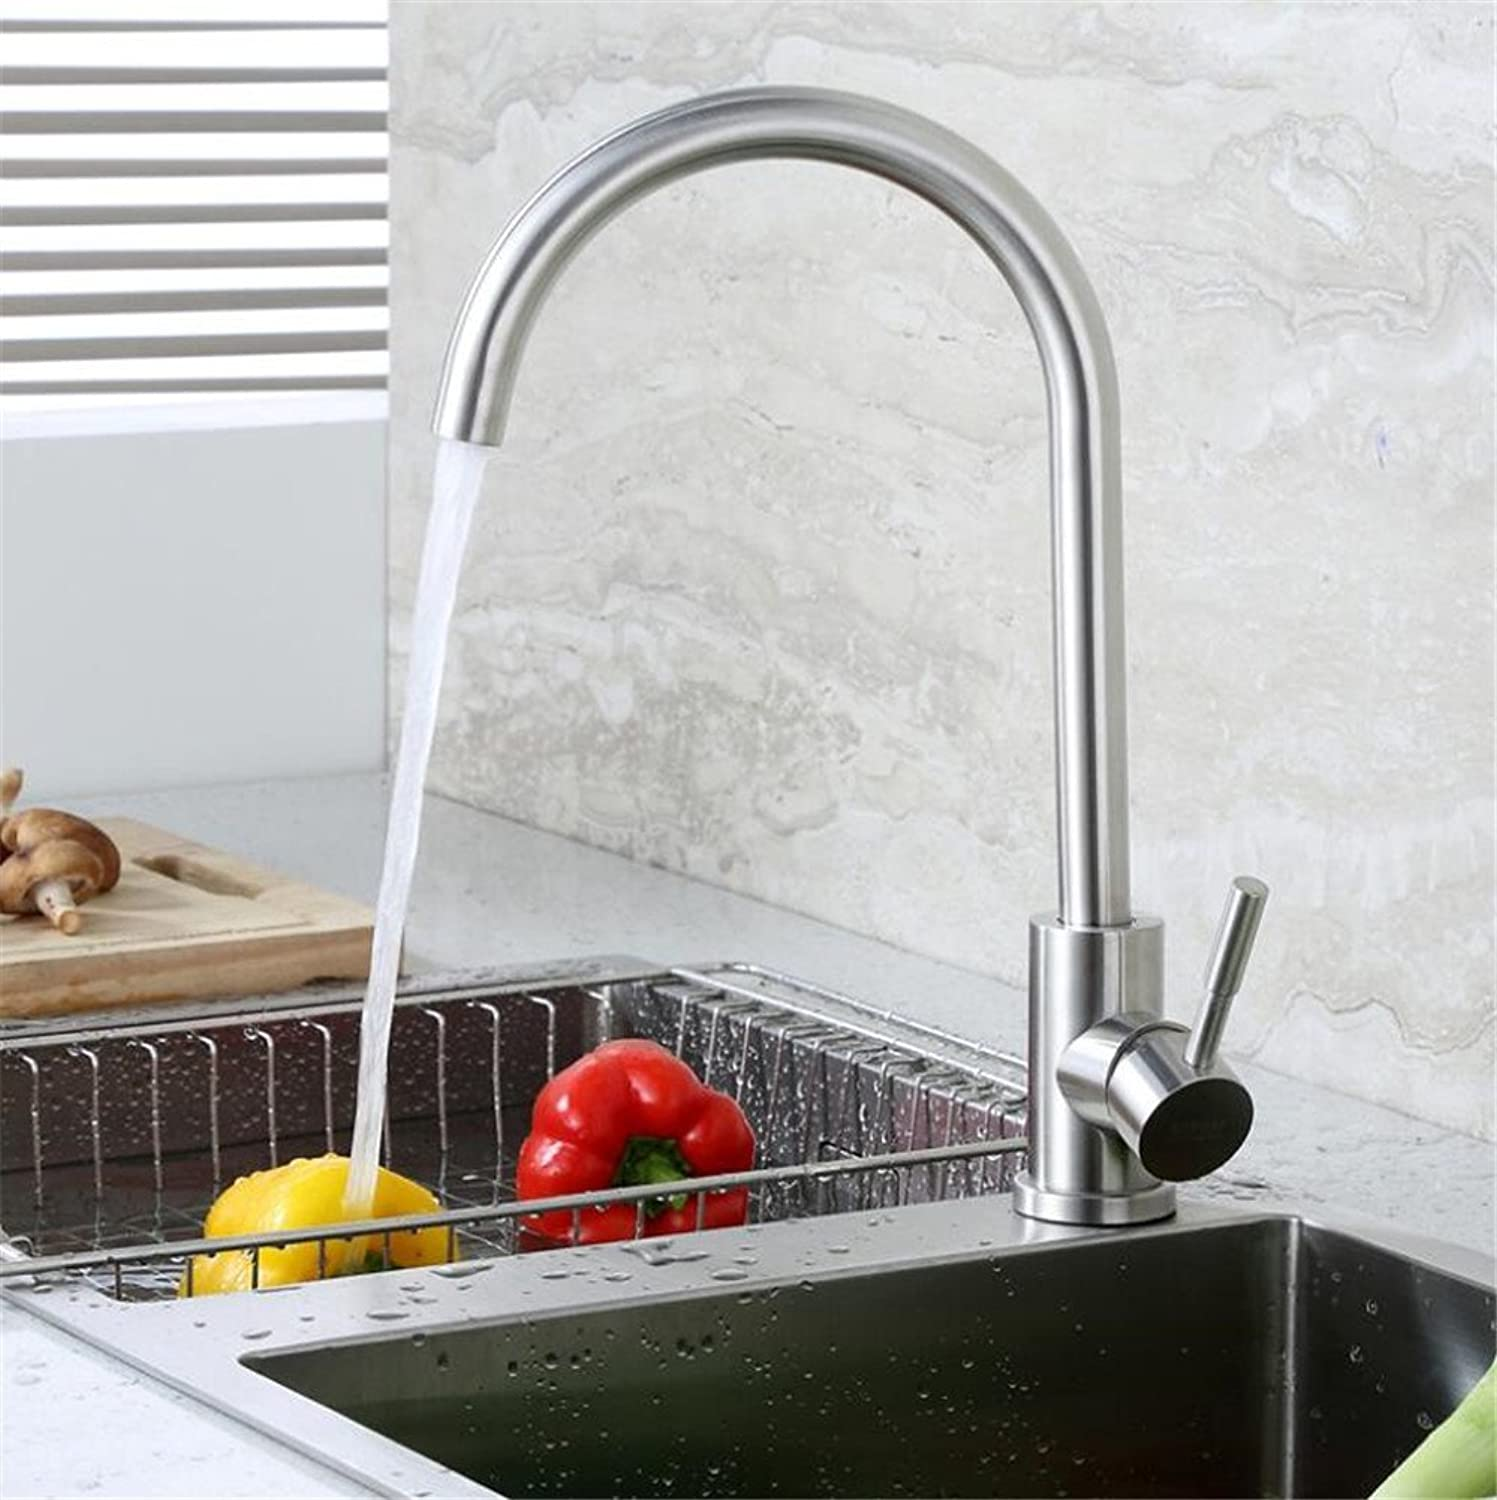 Decorry 304 Stainless Steel Cold Tap redation-Drawable Elongated Extending Ceramic Valve Core Faucet